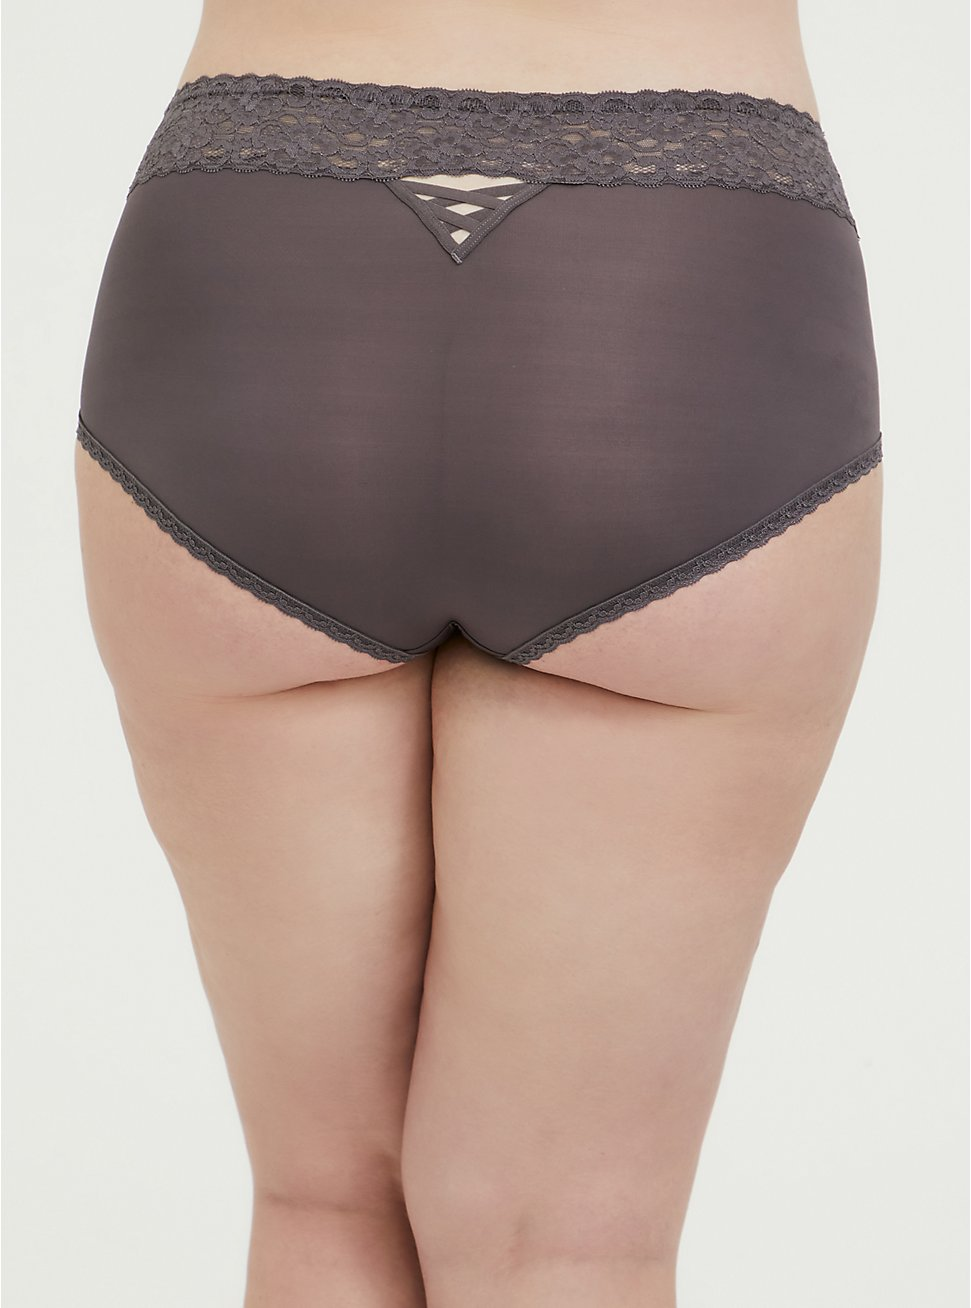 Slate Grey Wide Lace Microfiber Shine Brief Panty, RABBIT GREY, hi-res